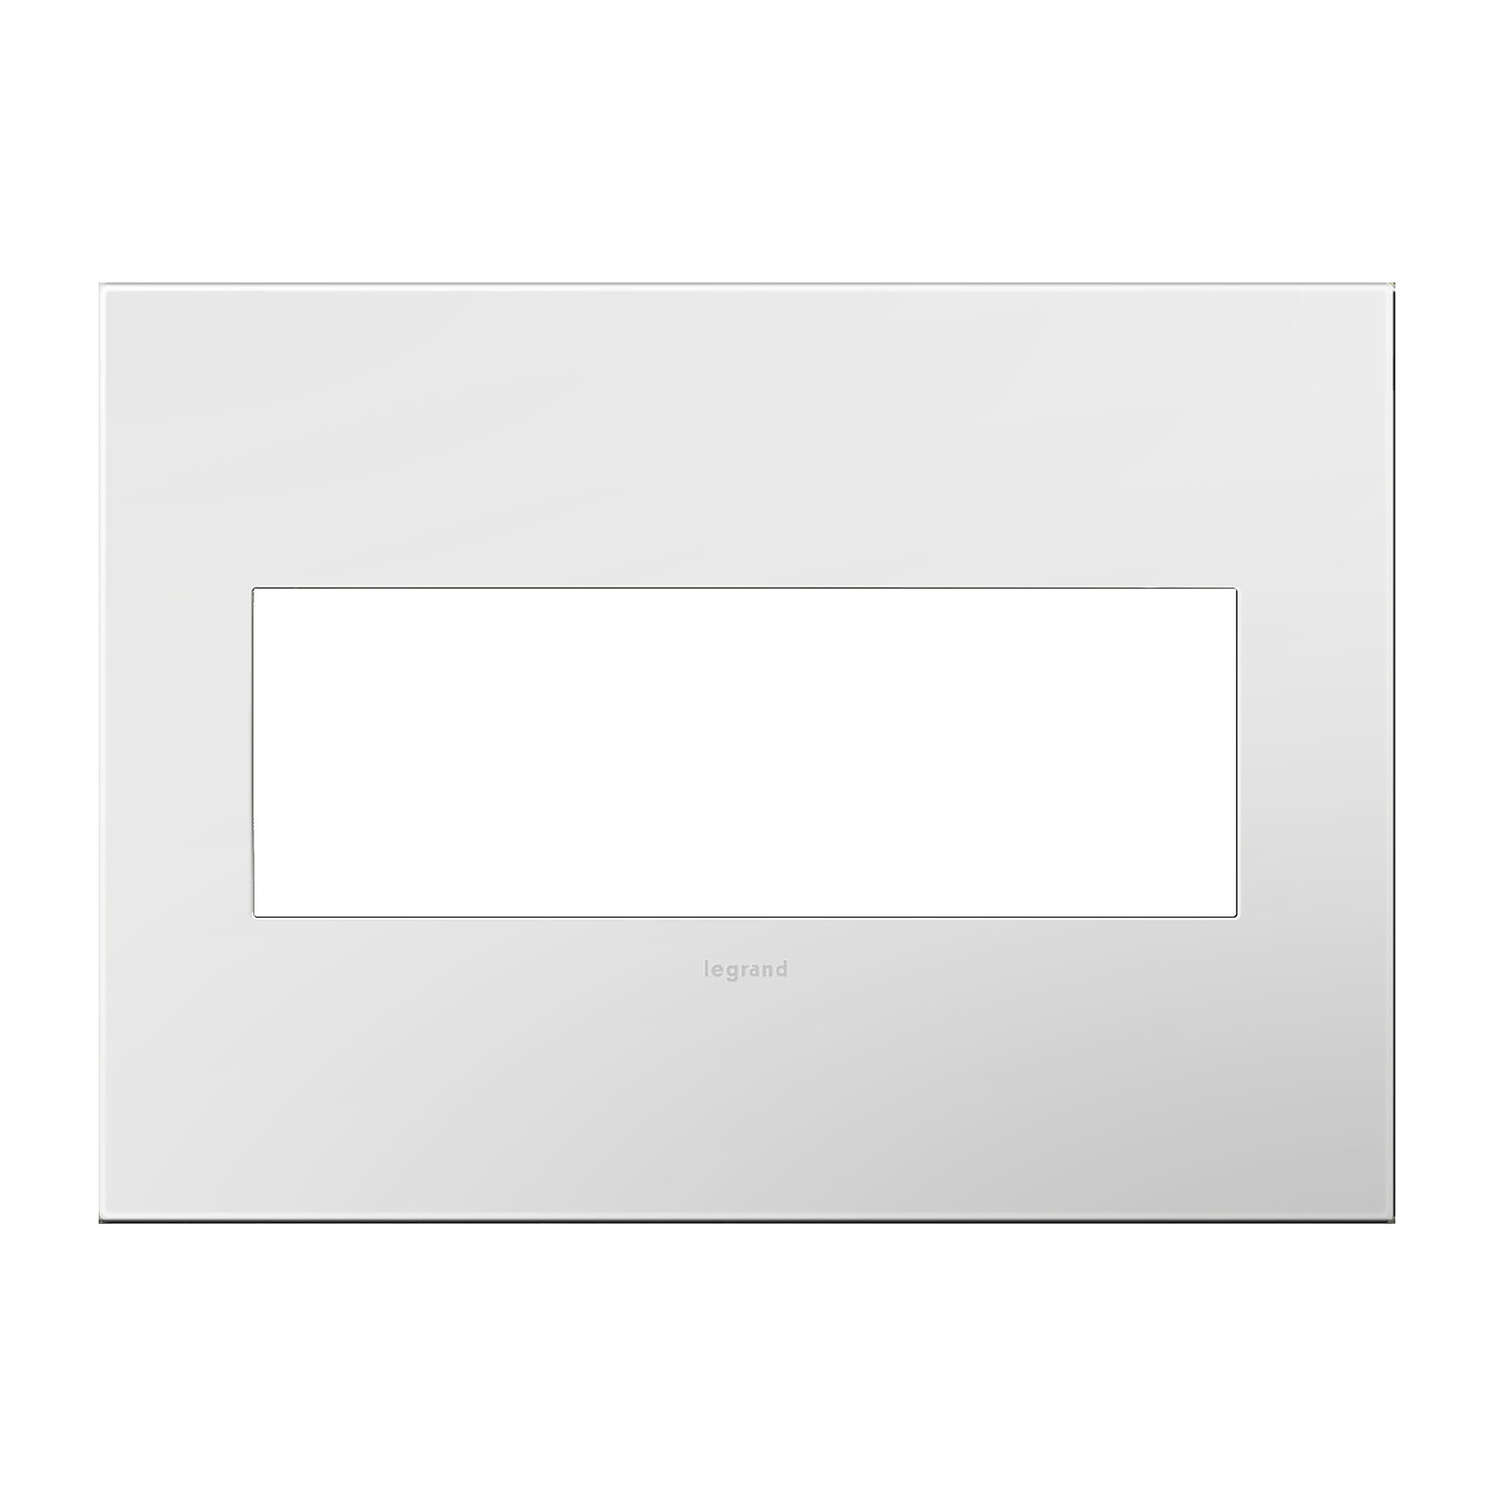 Legrand  Adorne  White  3 gang Thermoplastic Nylon  GFCI/Rocker  Wall Plate  1 pk